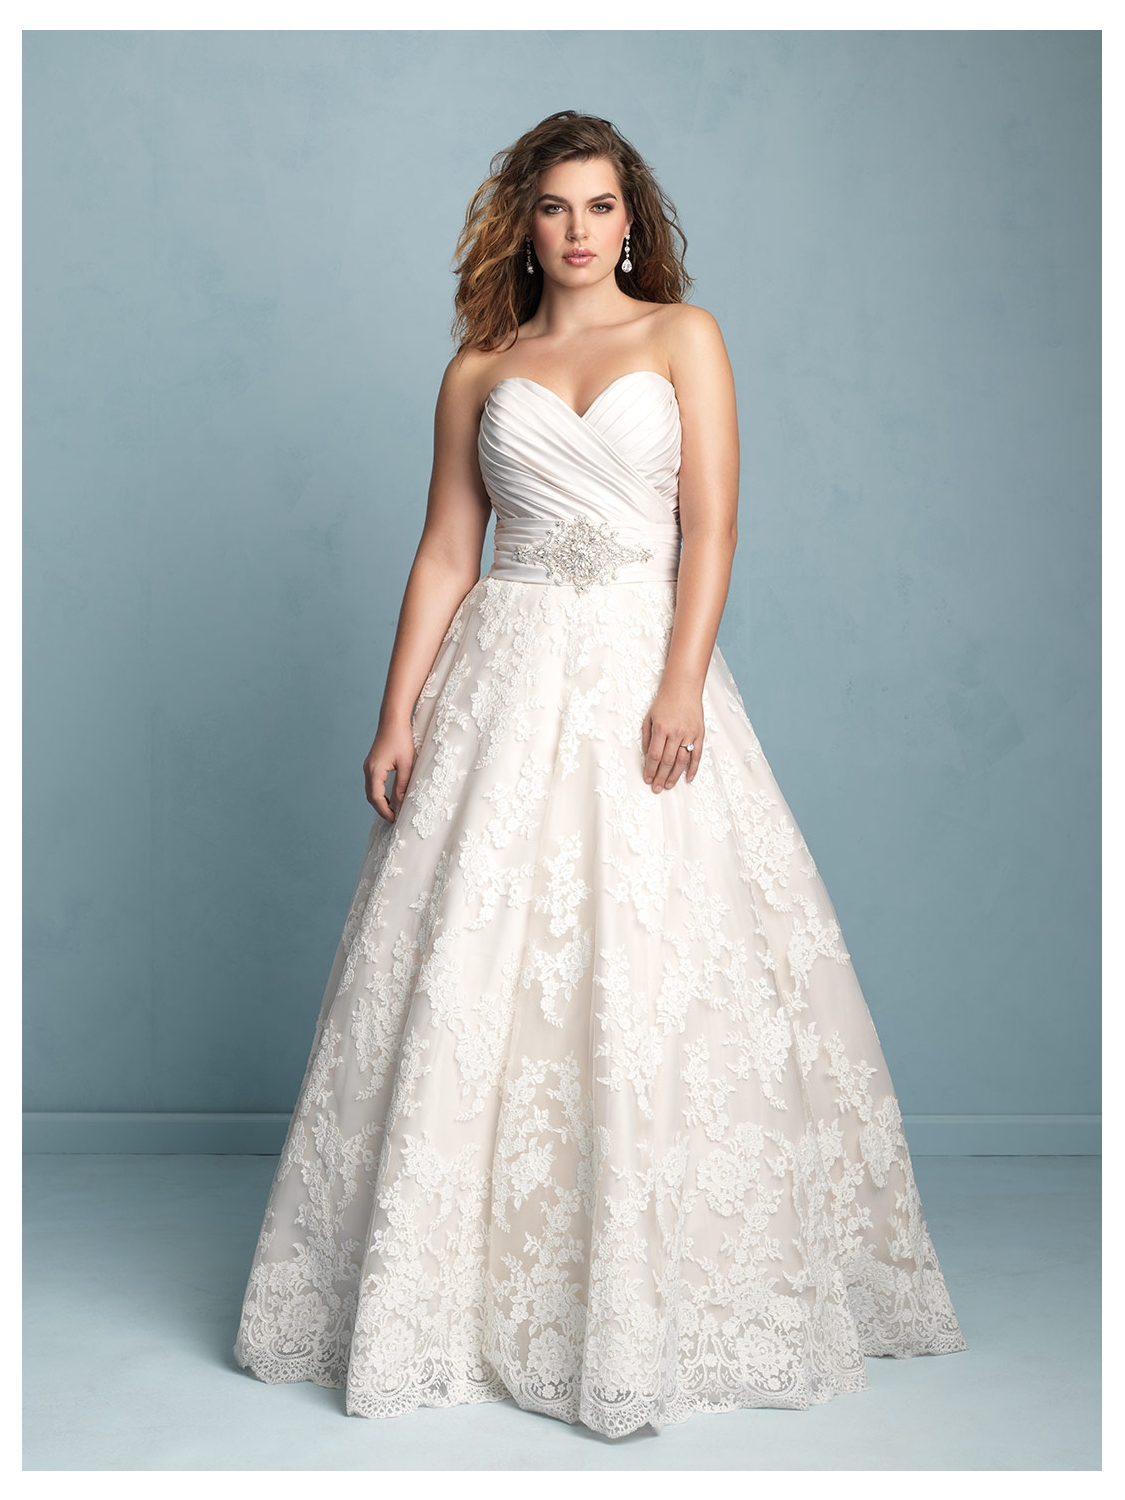 Allure Women Wedding Dress Style W351 | House of Brides